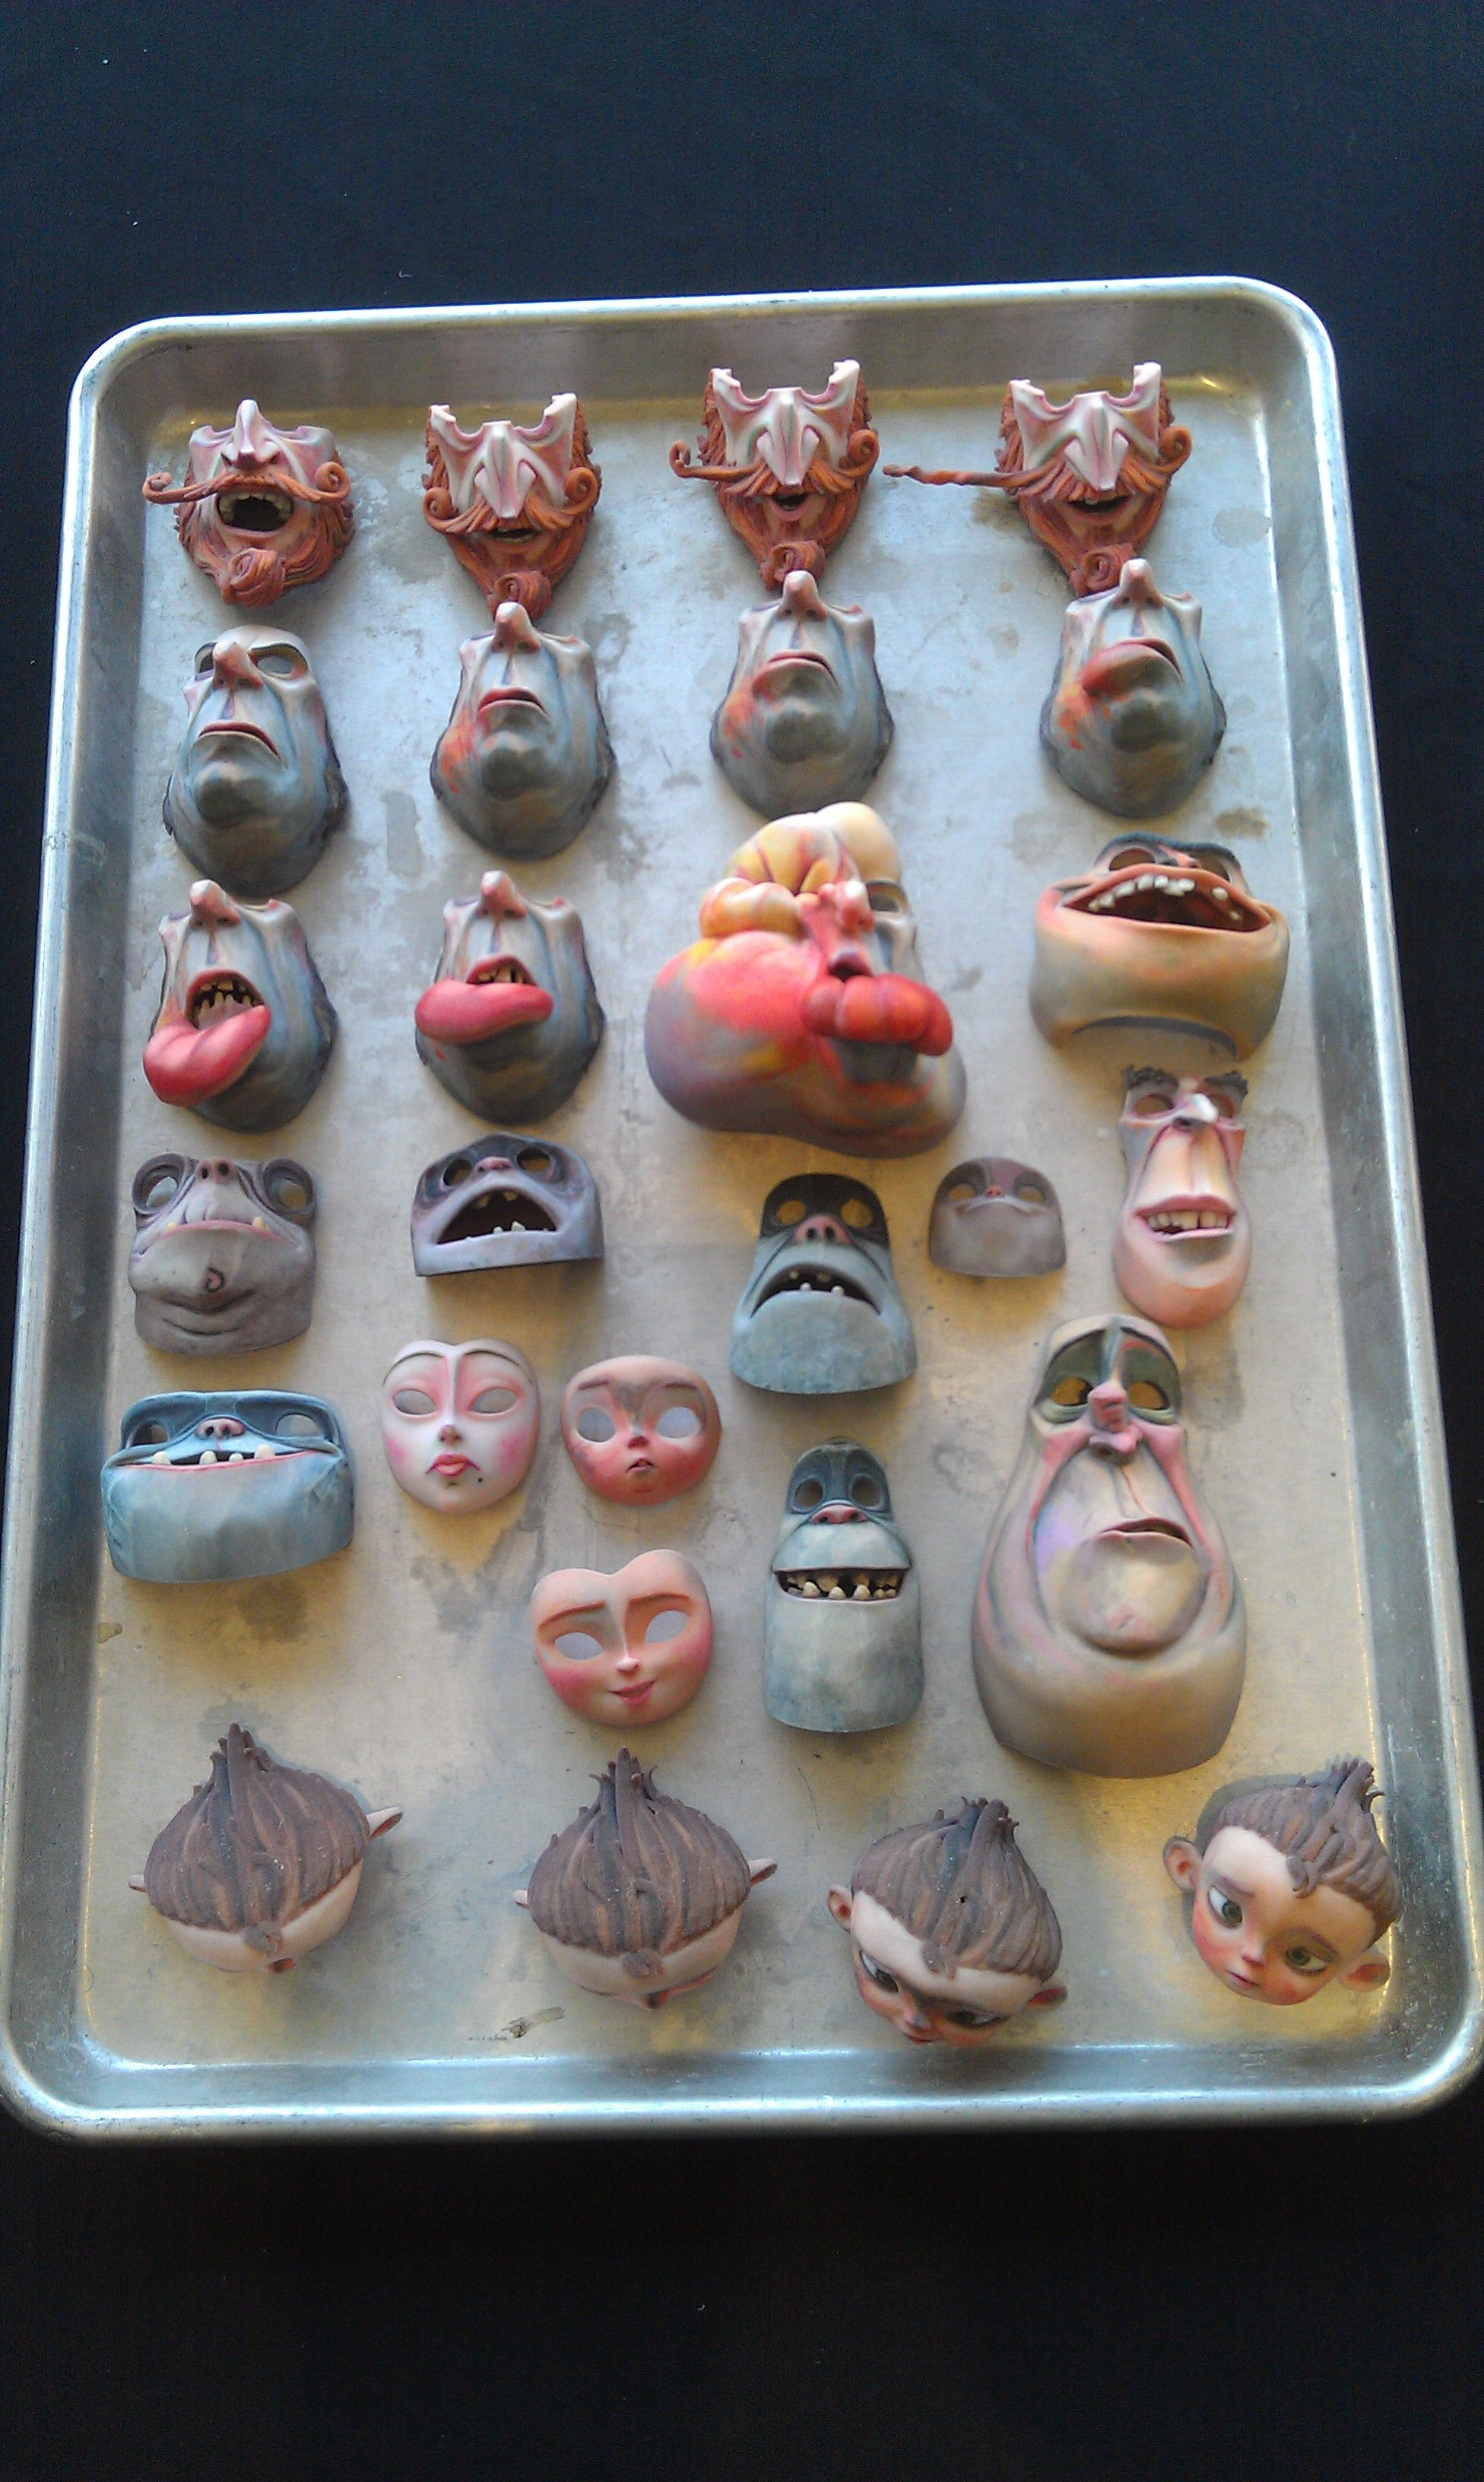 Faces from The Boxtrolls displayed at the Laika Perspective, W. Hollywood